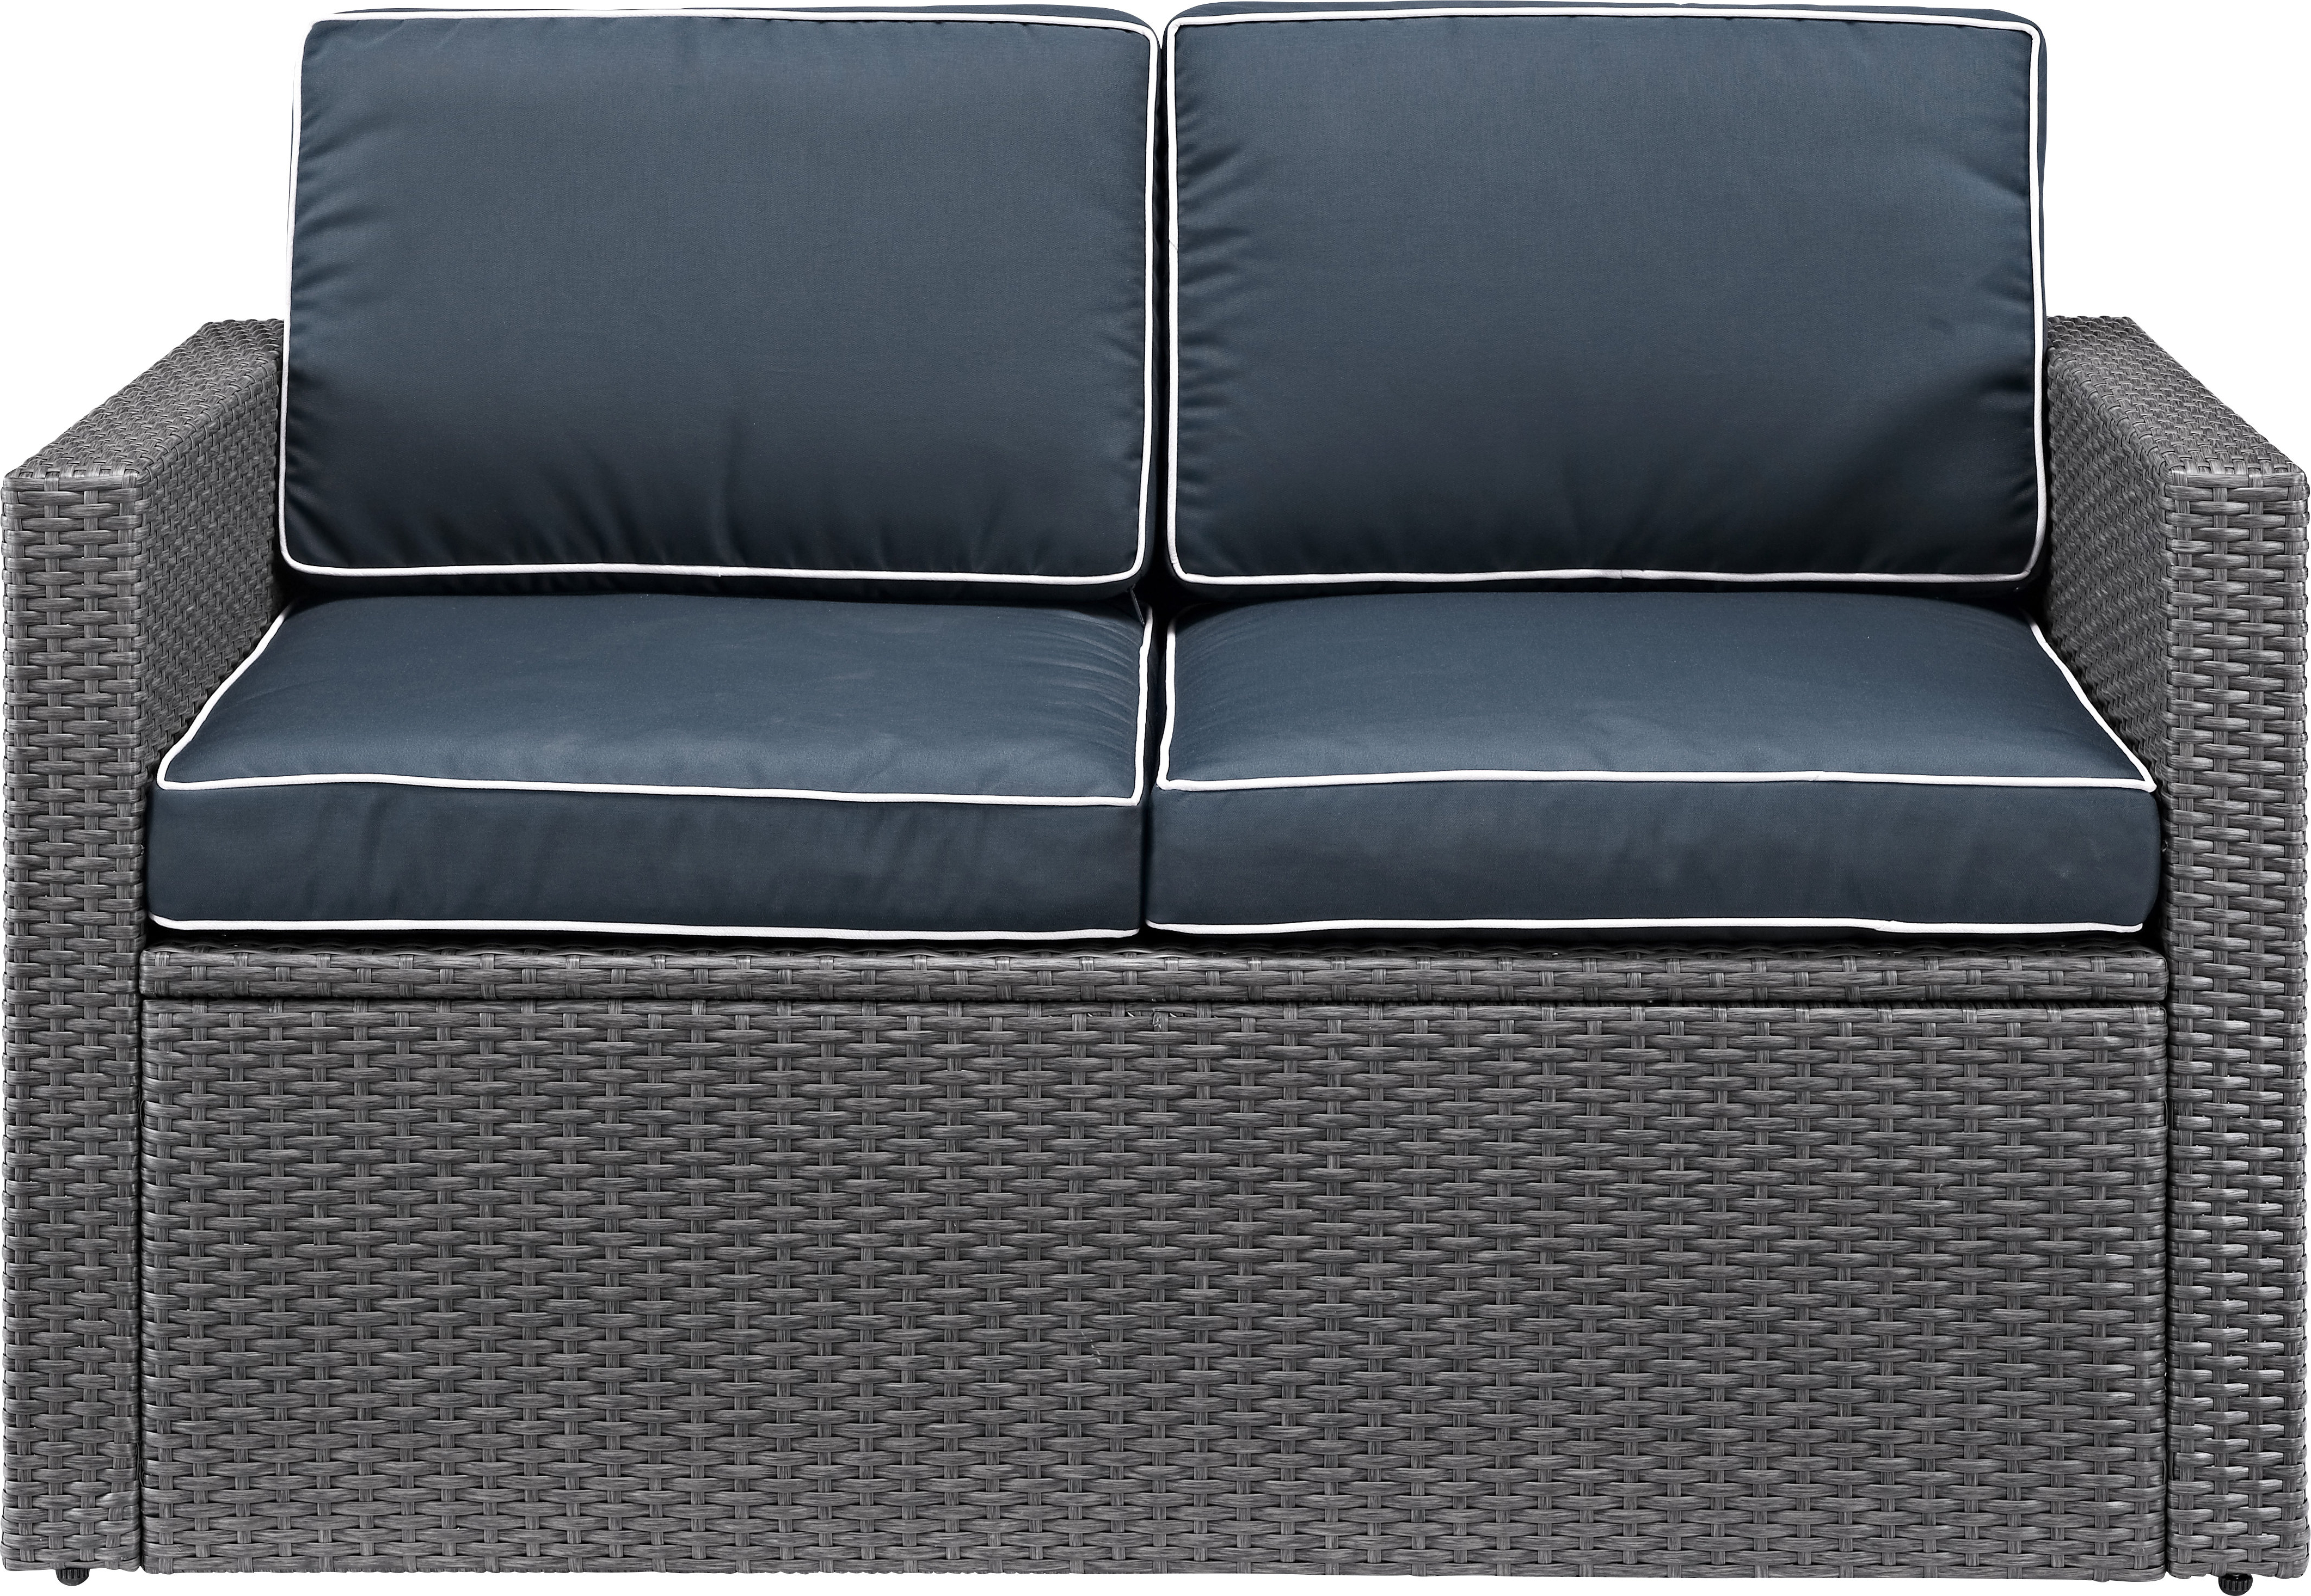 2019 Palm Harbor Loveseat With Cushion In Calvin Patio Loveseats With Cushions (View 1 of 20)